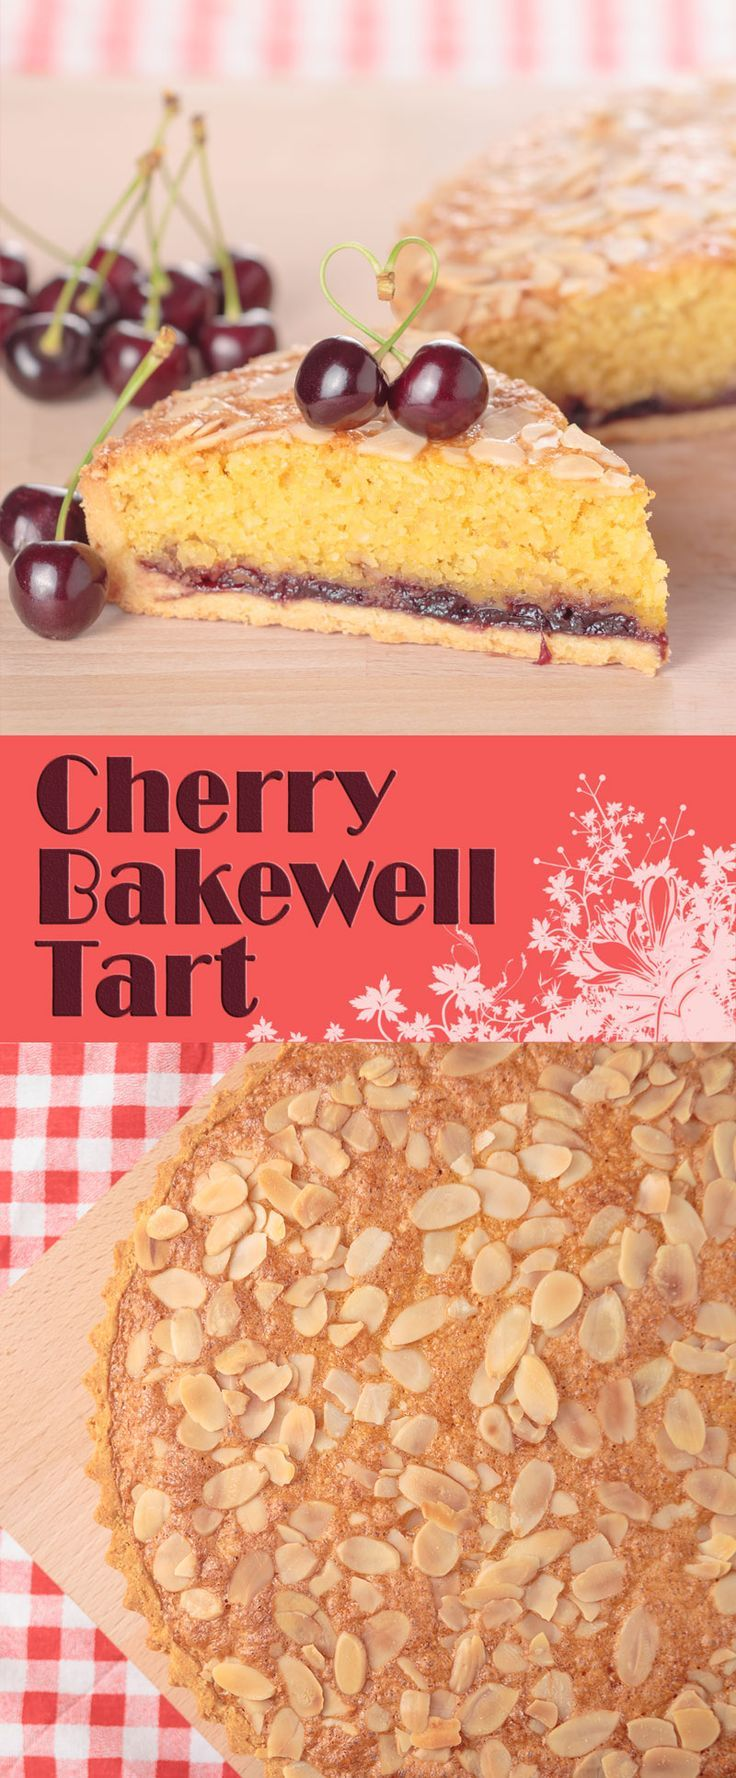 Cherry Bakewell Tart or Frangipane Tart - An extremely short sweet pastry case loaded with cherry jam and an almond laden frangipane filling baked to perfection. | Cooked by Krumpli